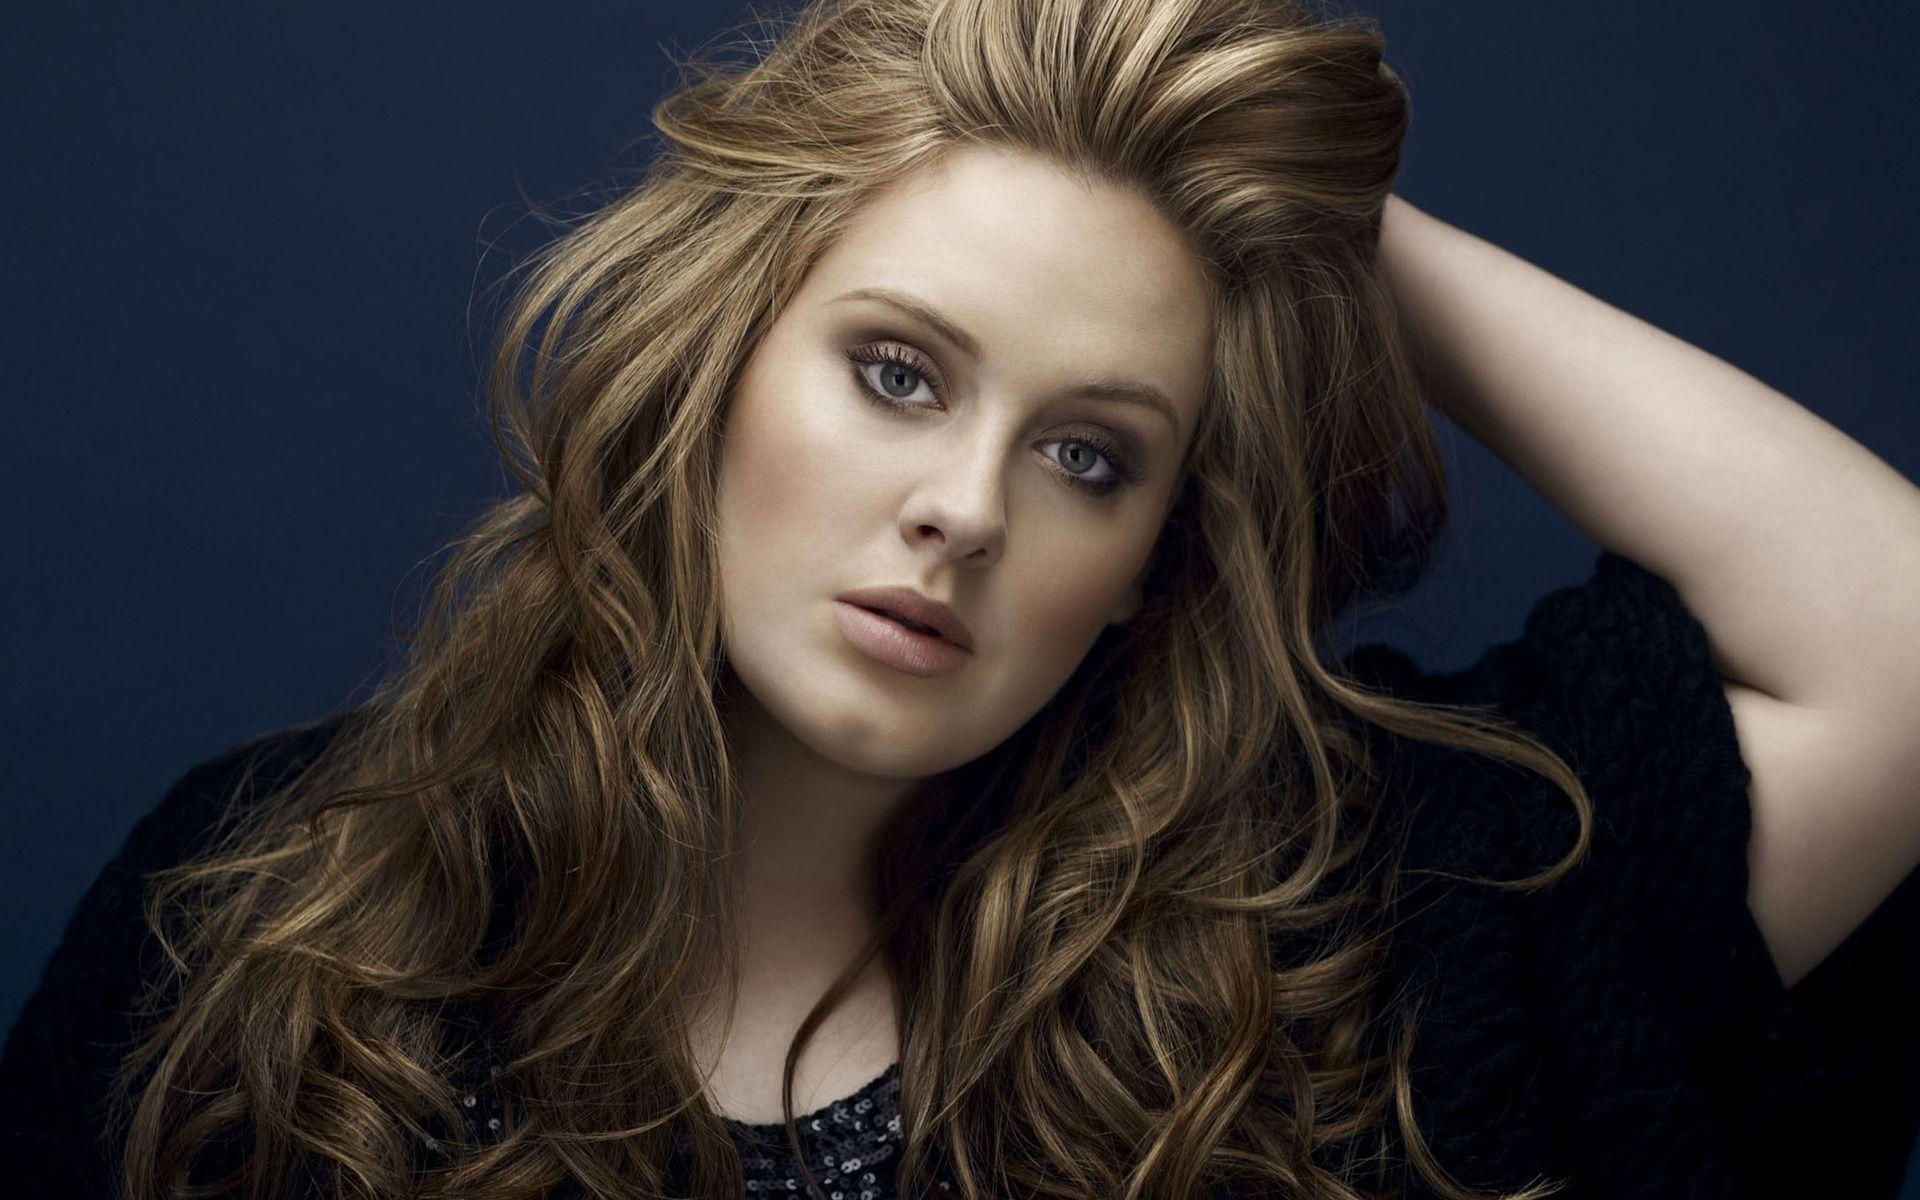 Adele Wallpapers High Resolution and Quality Download